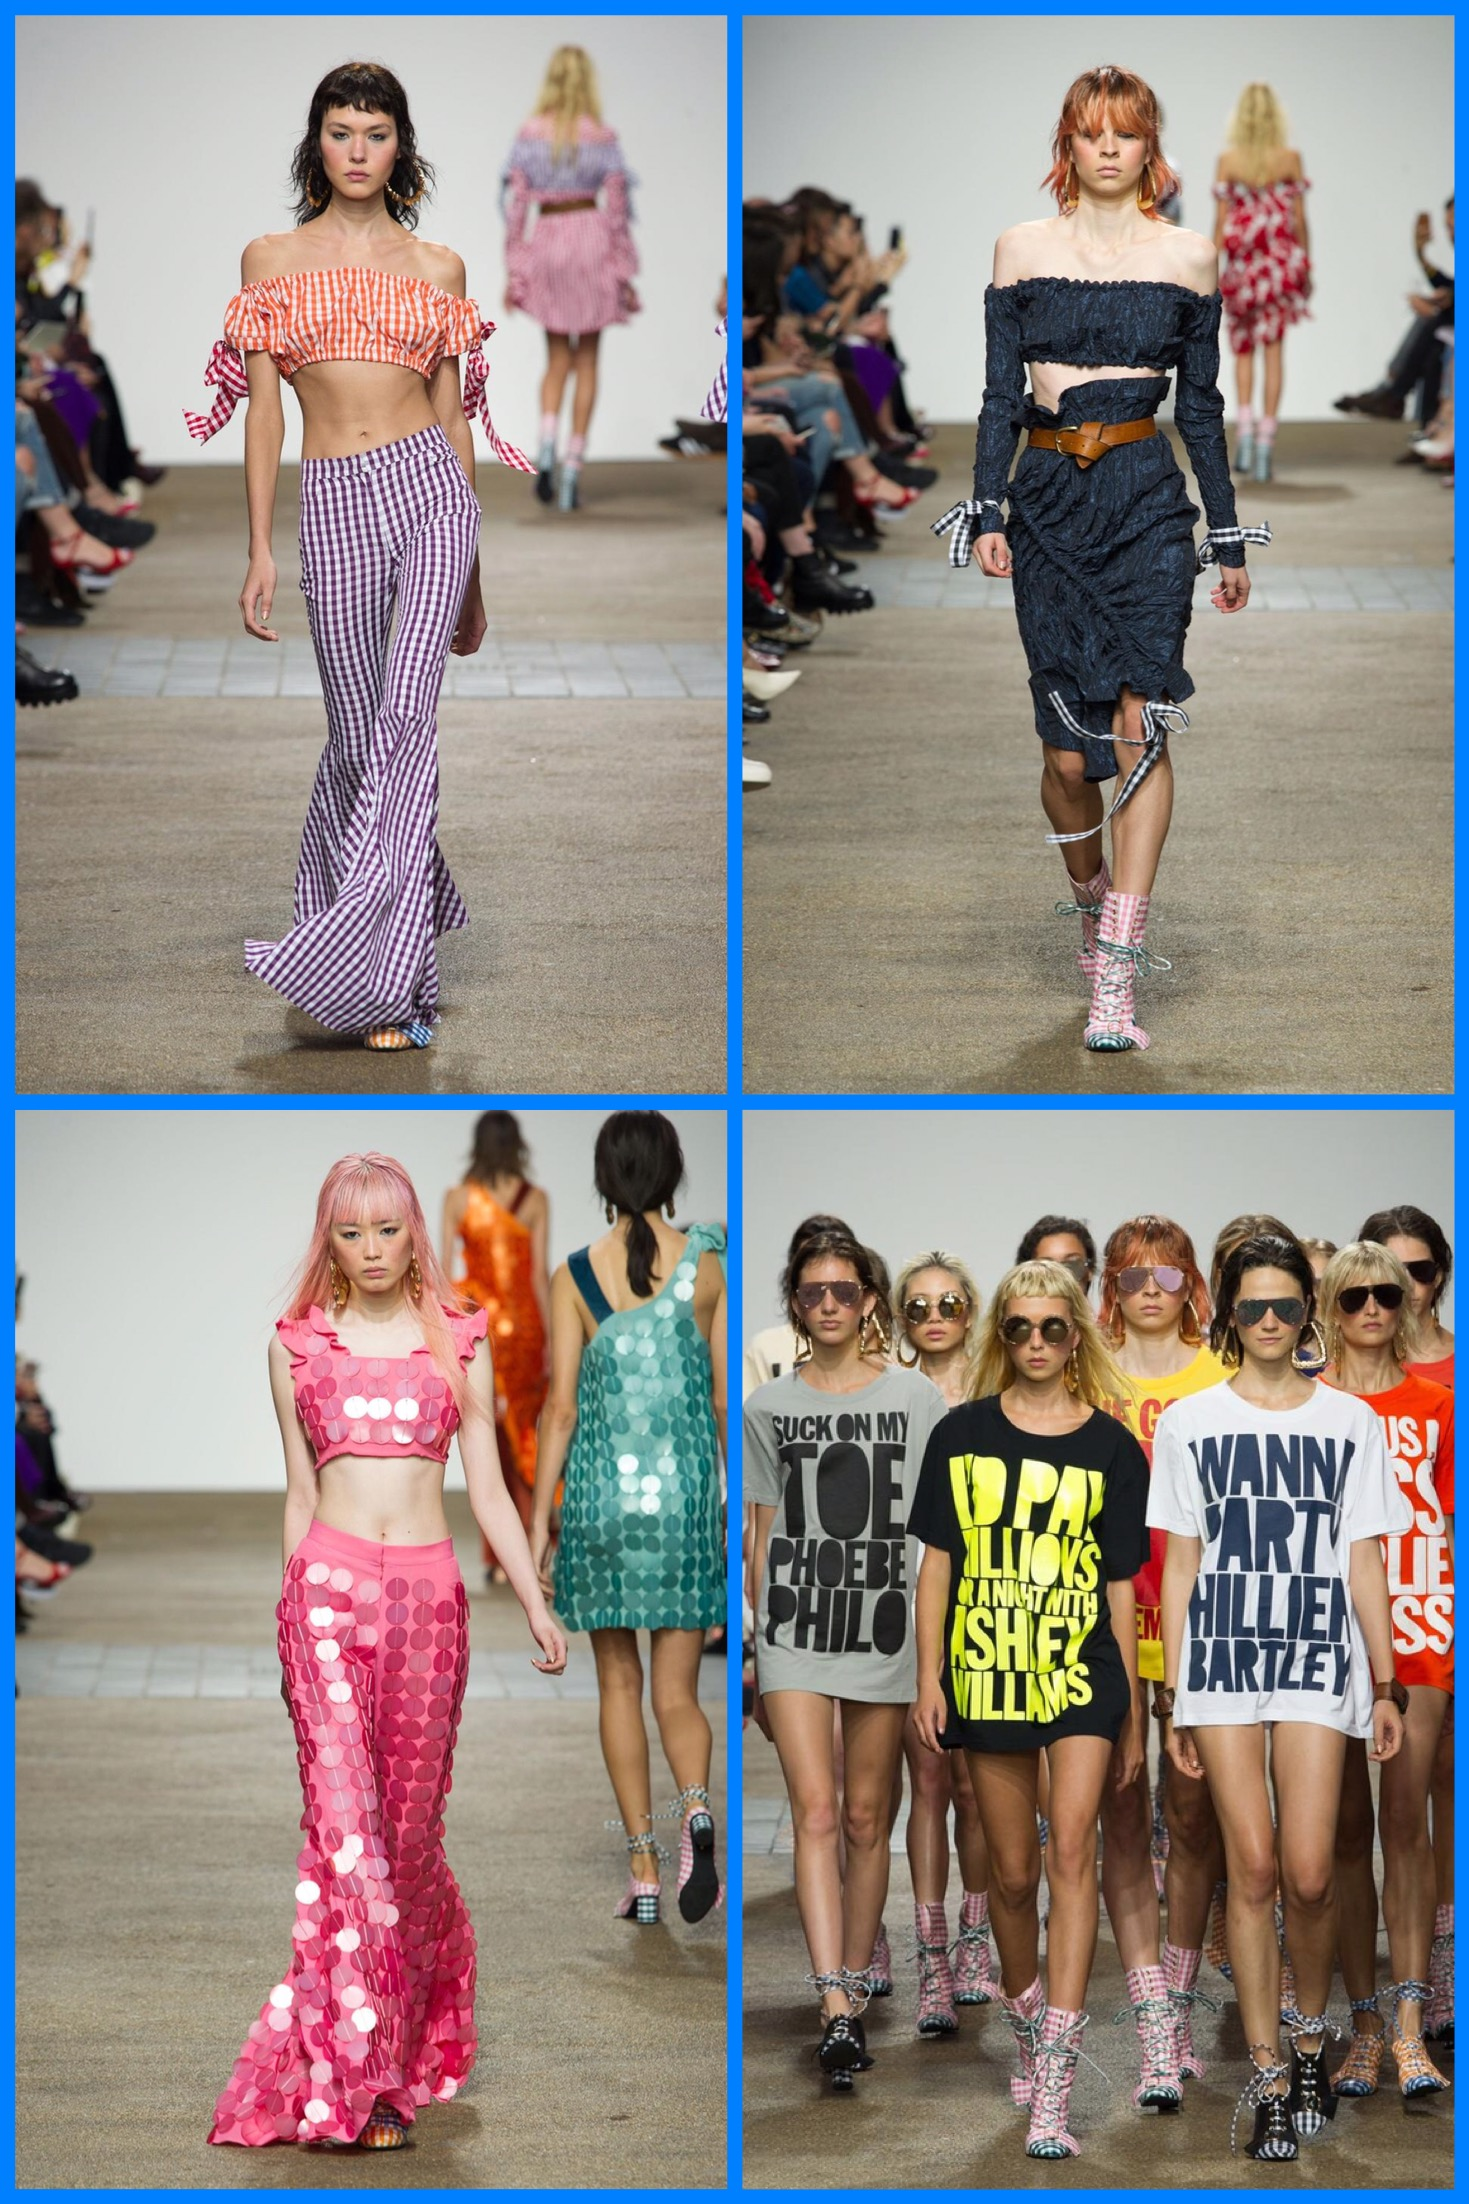 london-fashion-week-pret-a-porter-spring-summer-2017-style-house-of-holland